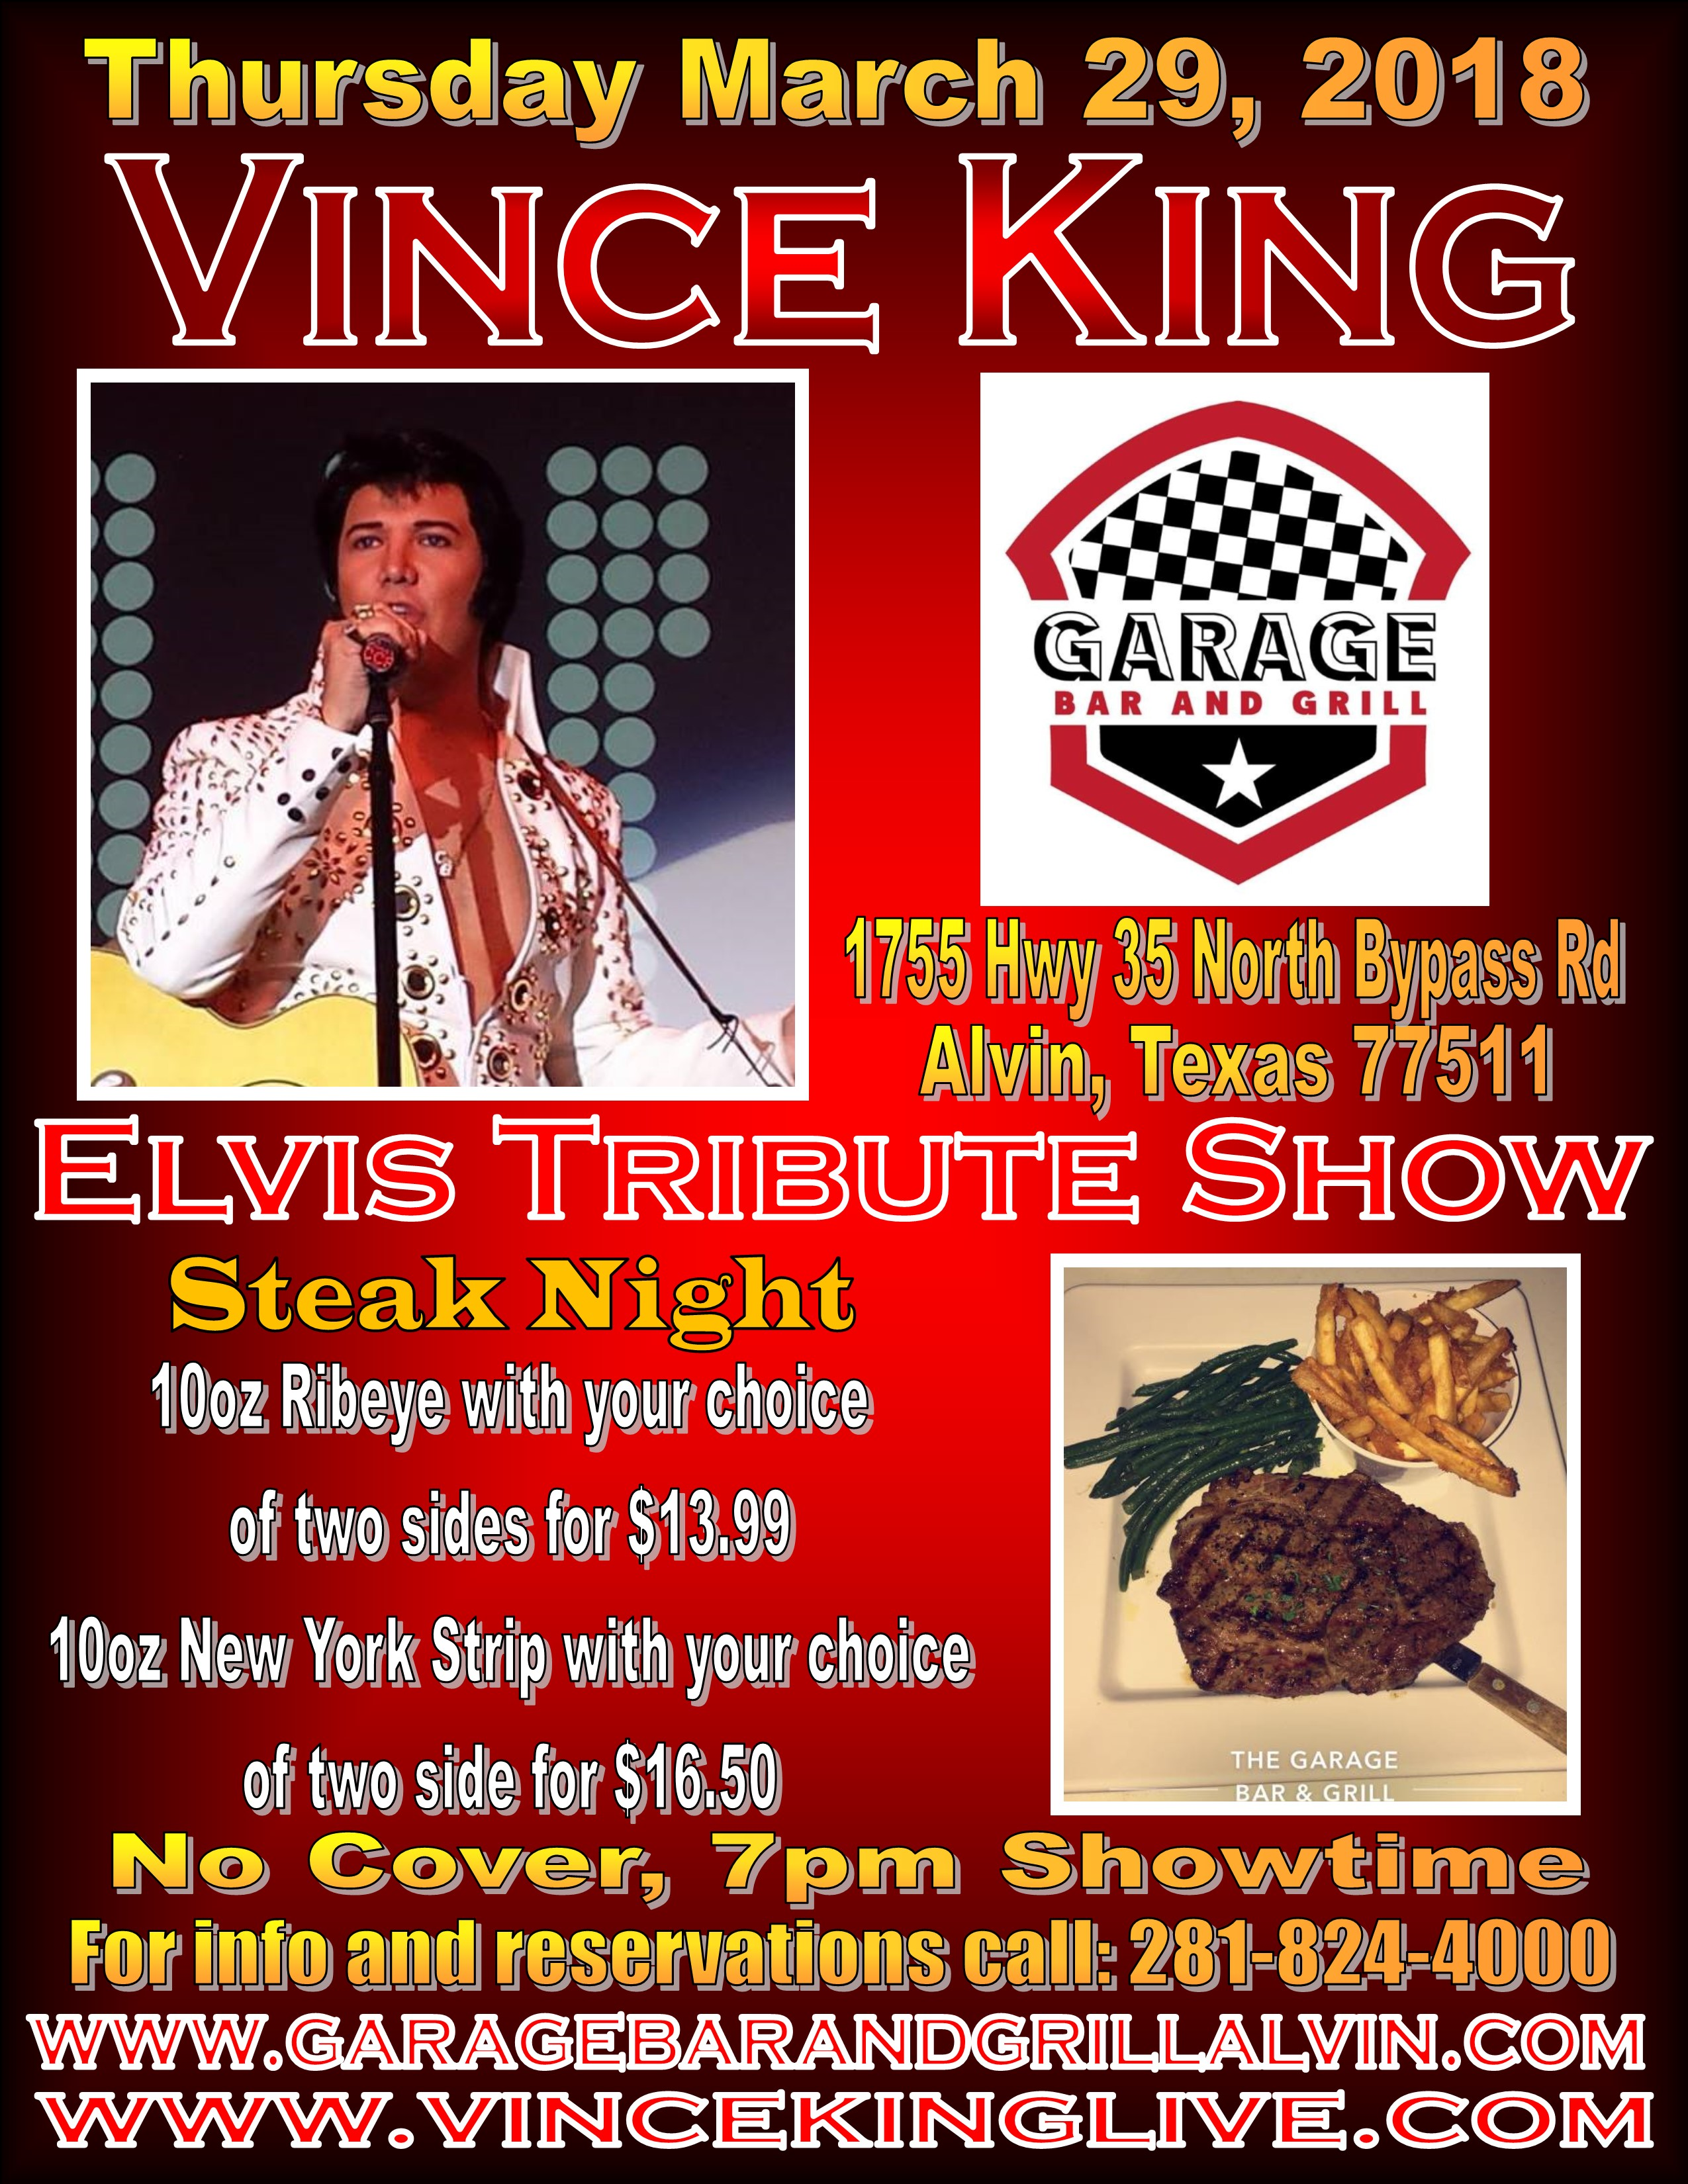 The Garage Bar Grill Alvin Tx Vince King Live